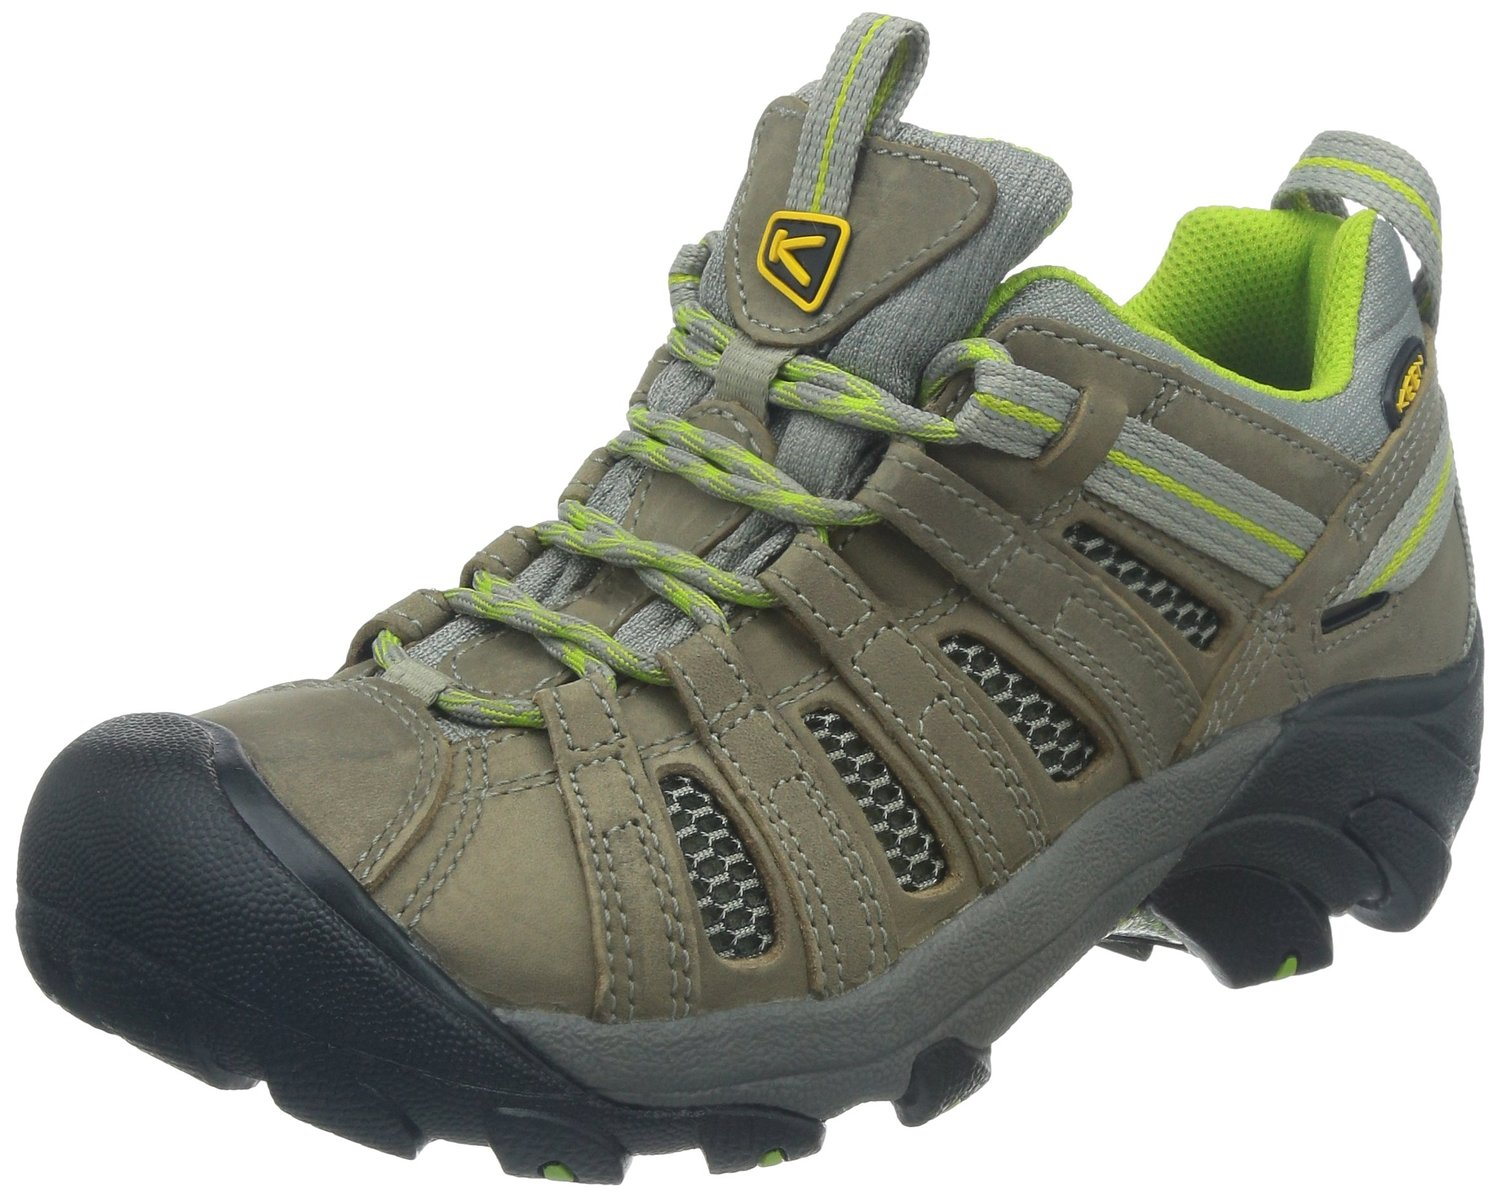 Wear Can I Buy Hiking Shoes